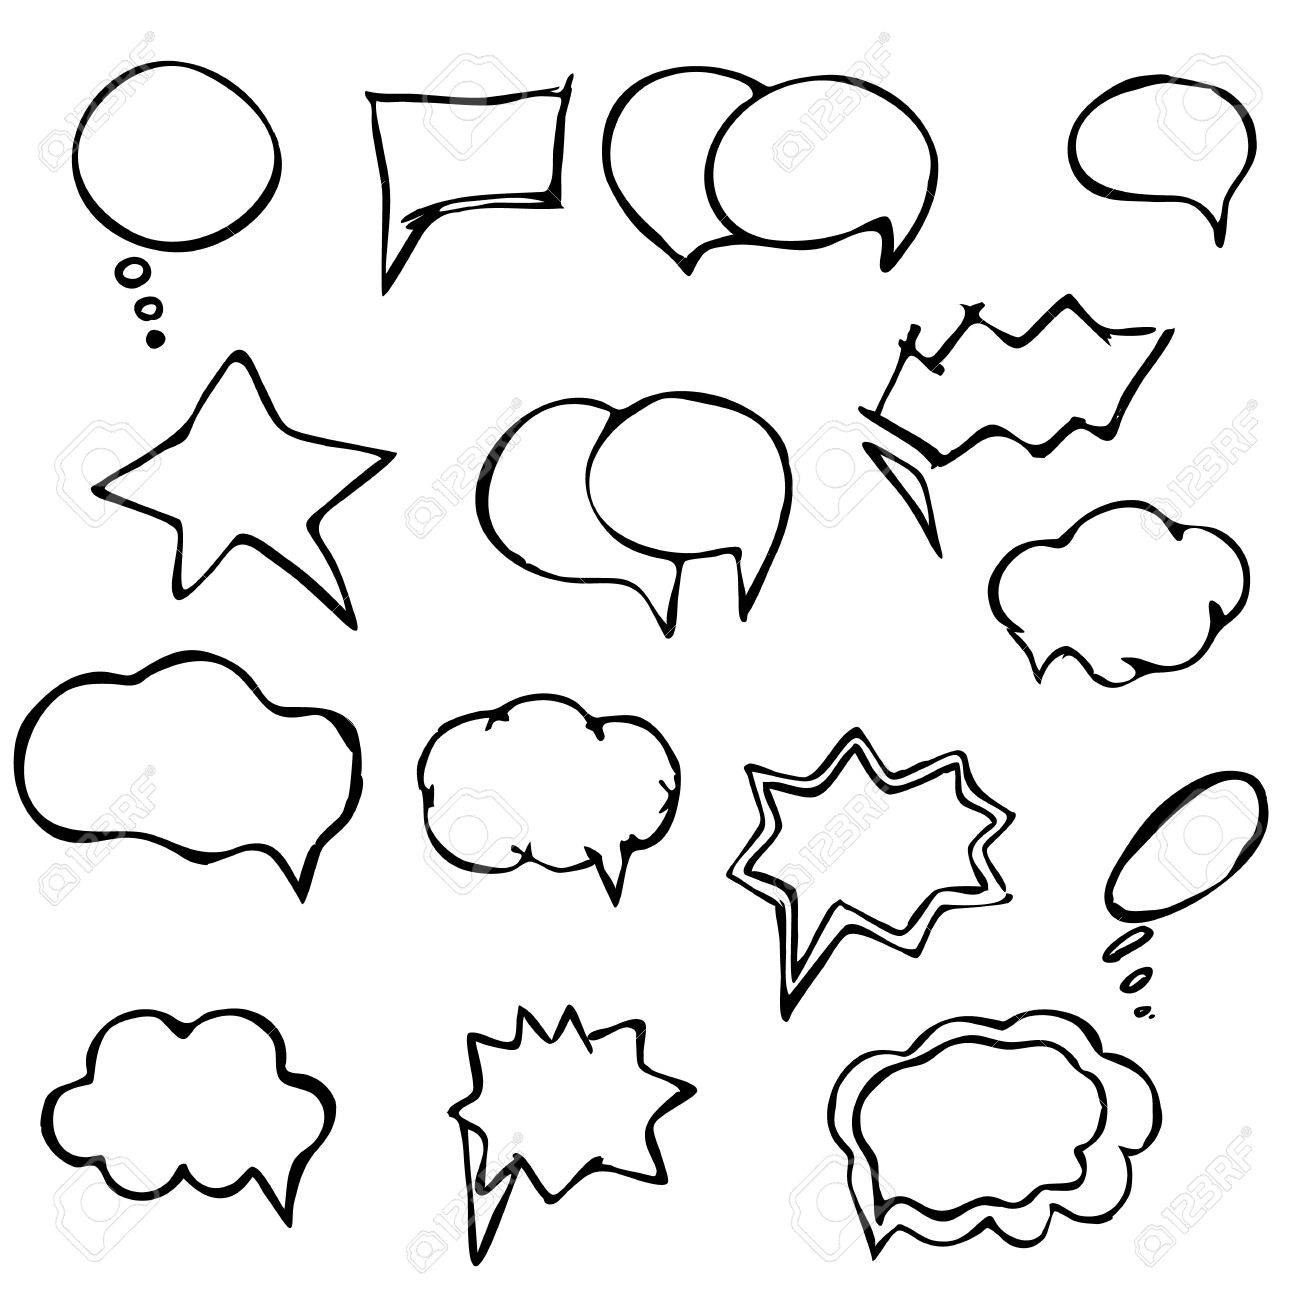 1300x1300 Collection Of Hand Drawn Speech Balloons (Bubbles) Royalty Free